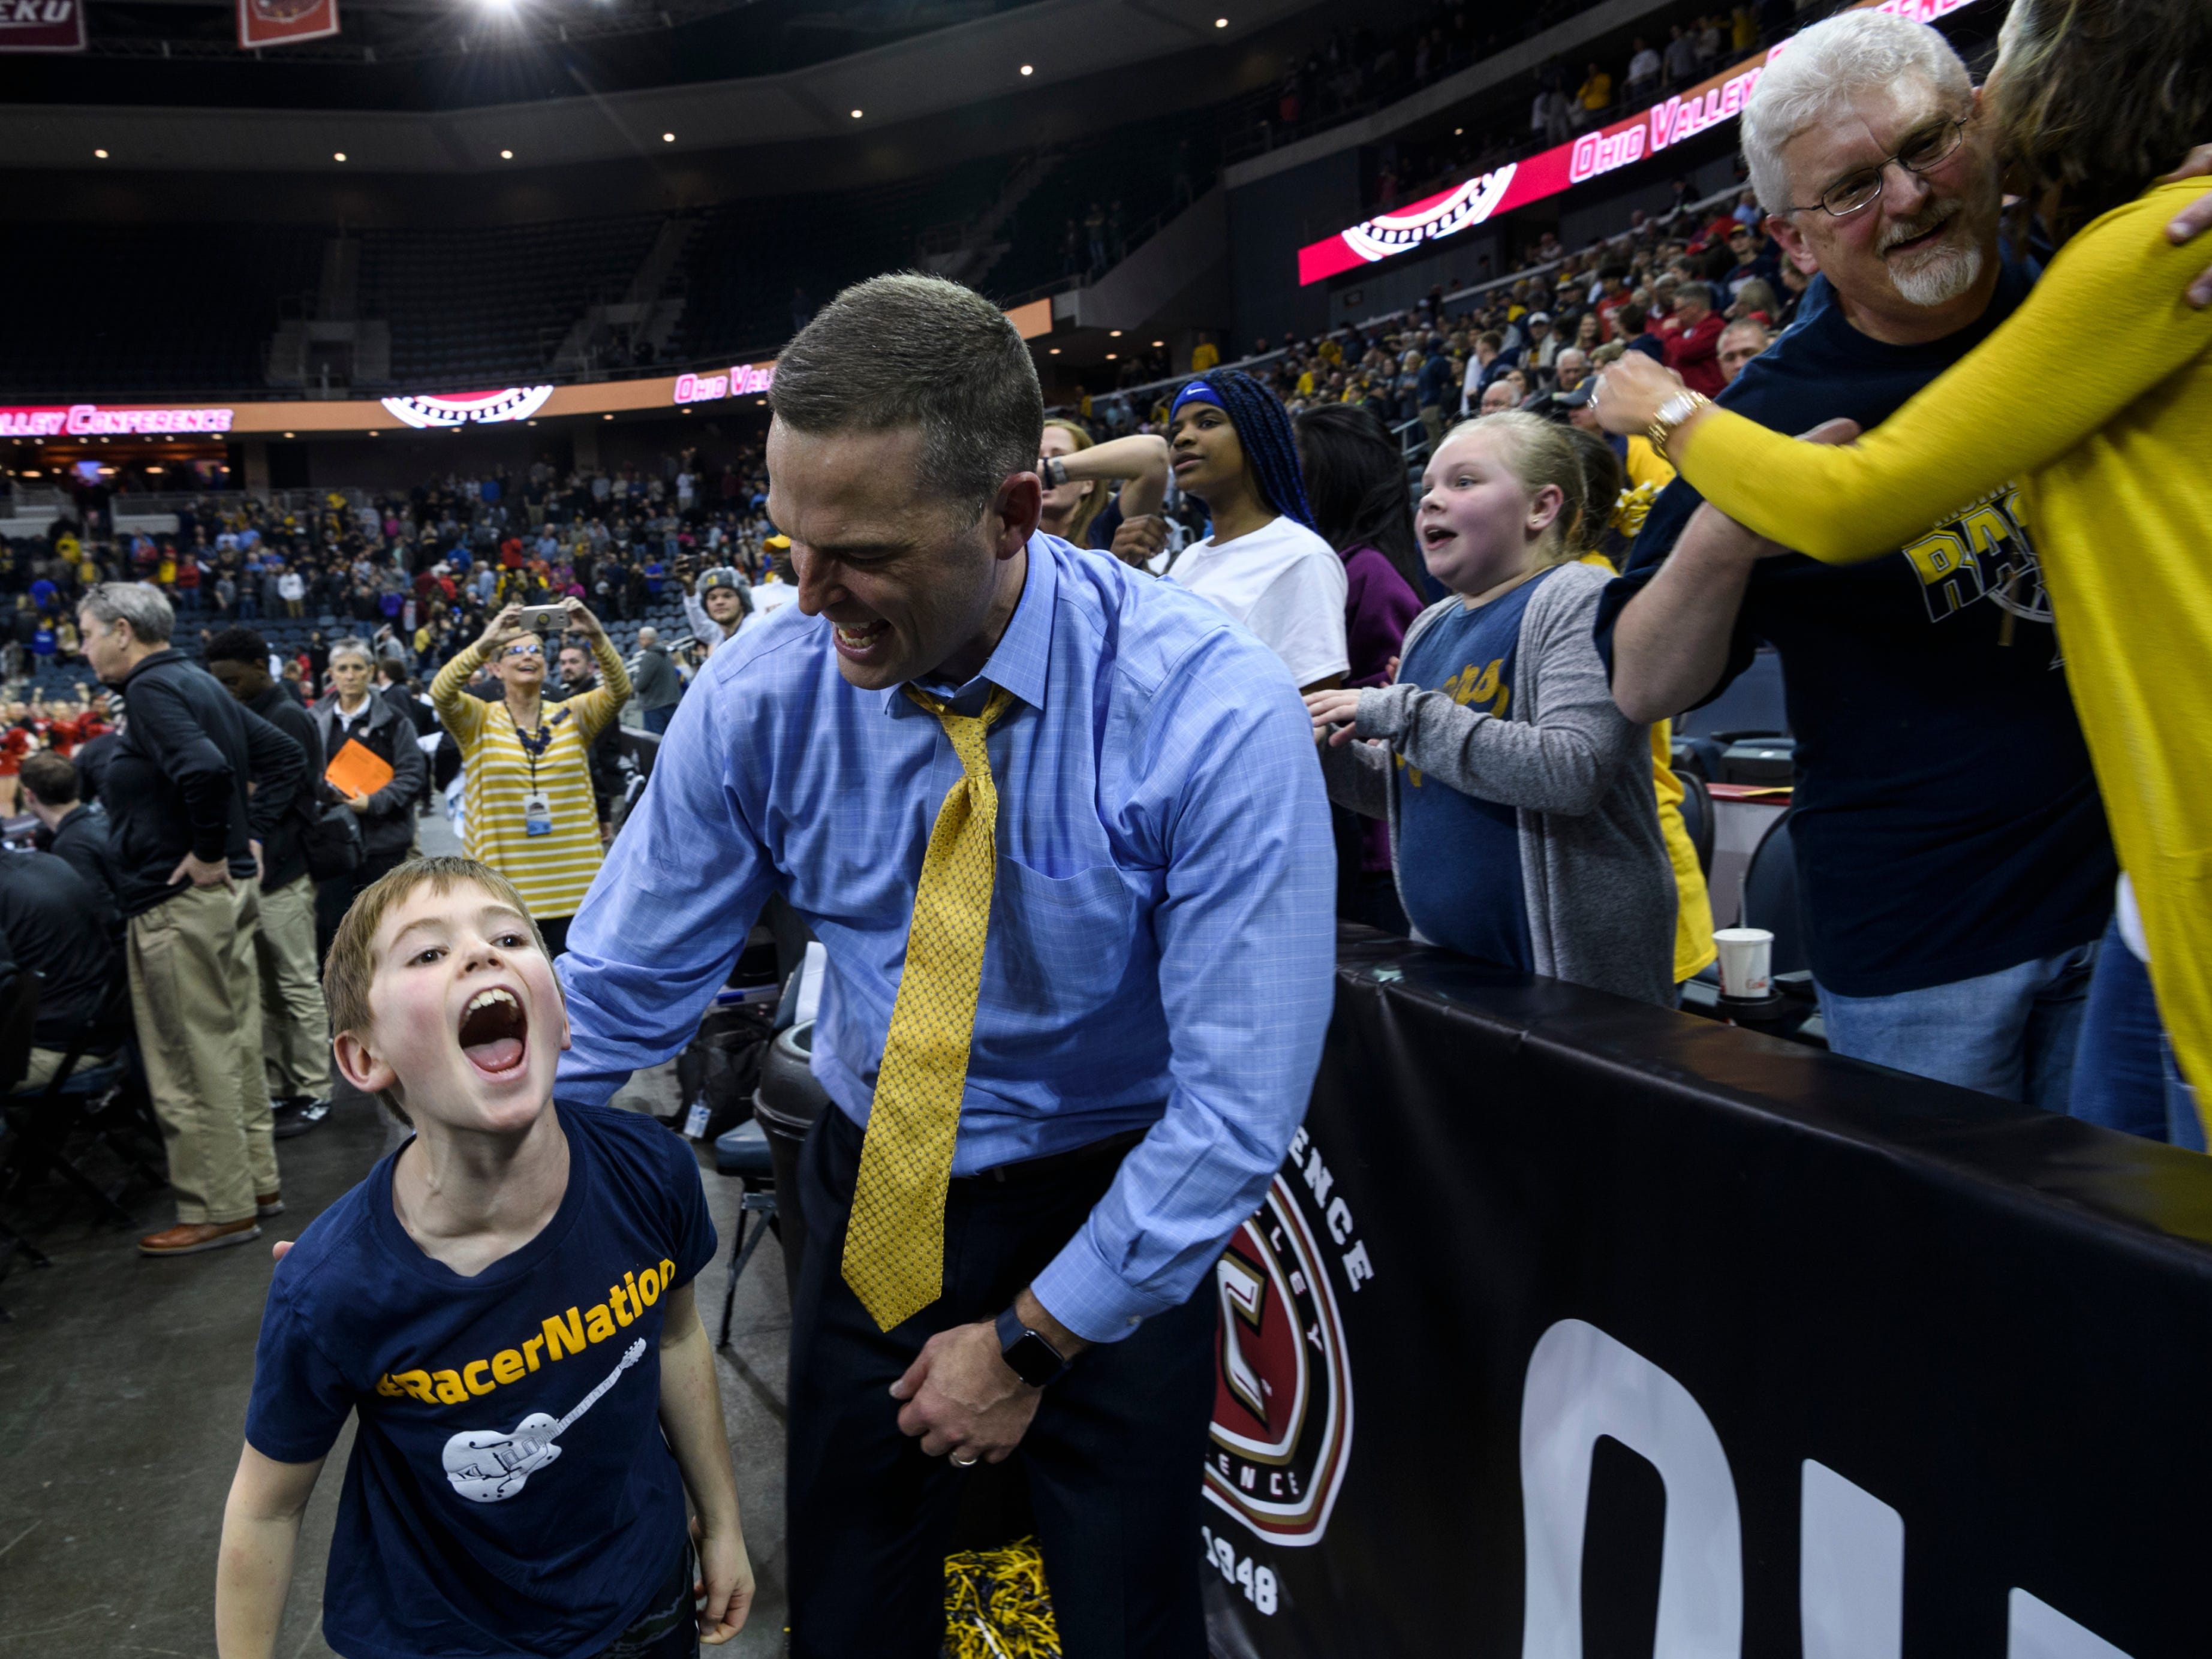 Mason McMahon, 7, celebrates the Murray State Racers 76-74 win with his father Matt McMahon, Racers Head Coach, during the Ohio Valley Conference tournament semifinals at Ford Center in Evansville, Ind., Friday, March 8, 2019. The Racers will advance to Saturday night's OVC Championship against the Belmont Bruins.